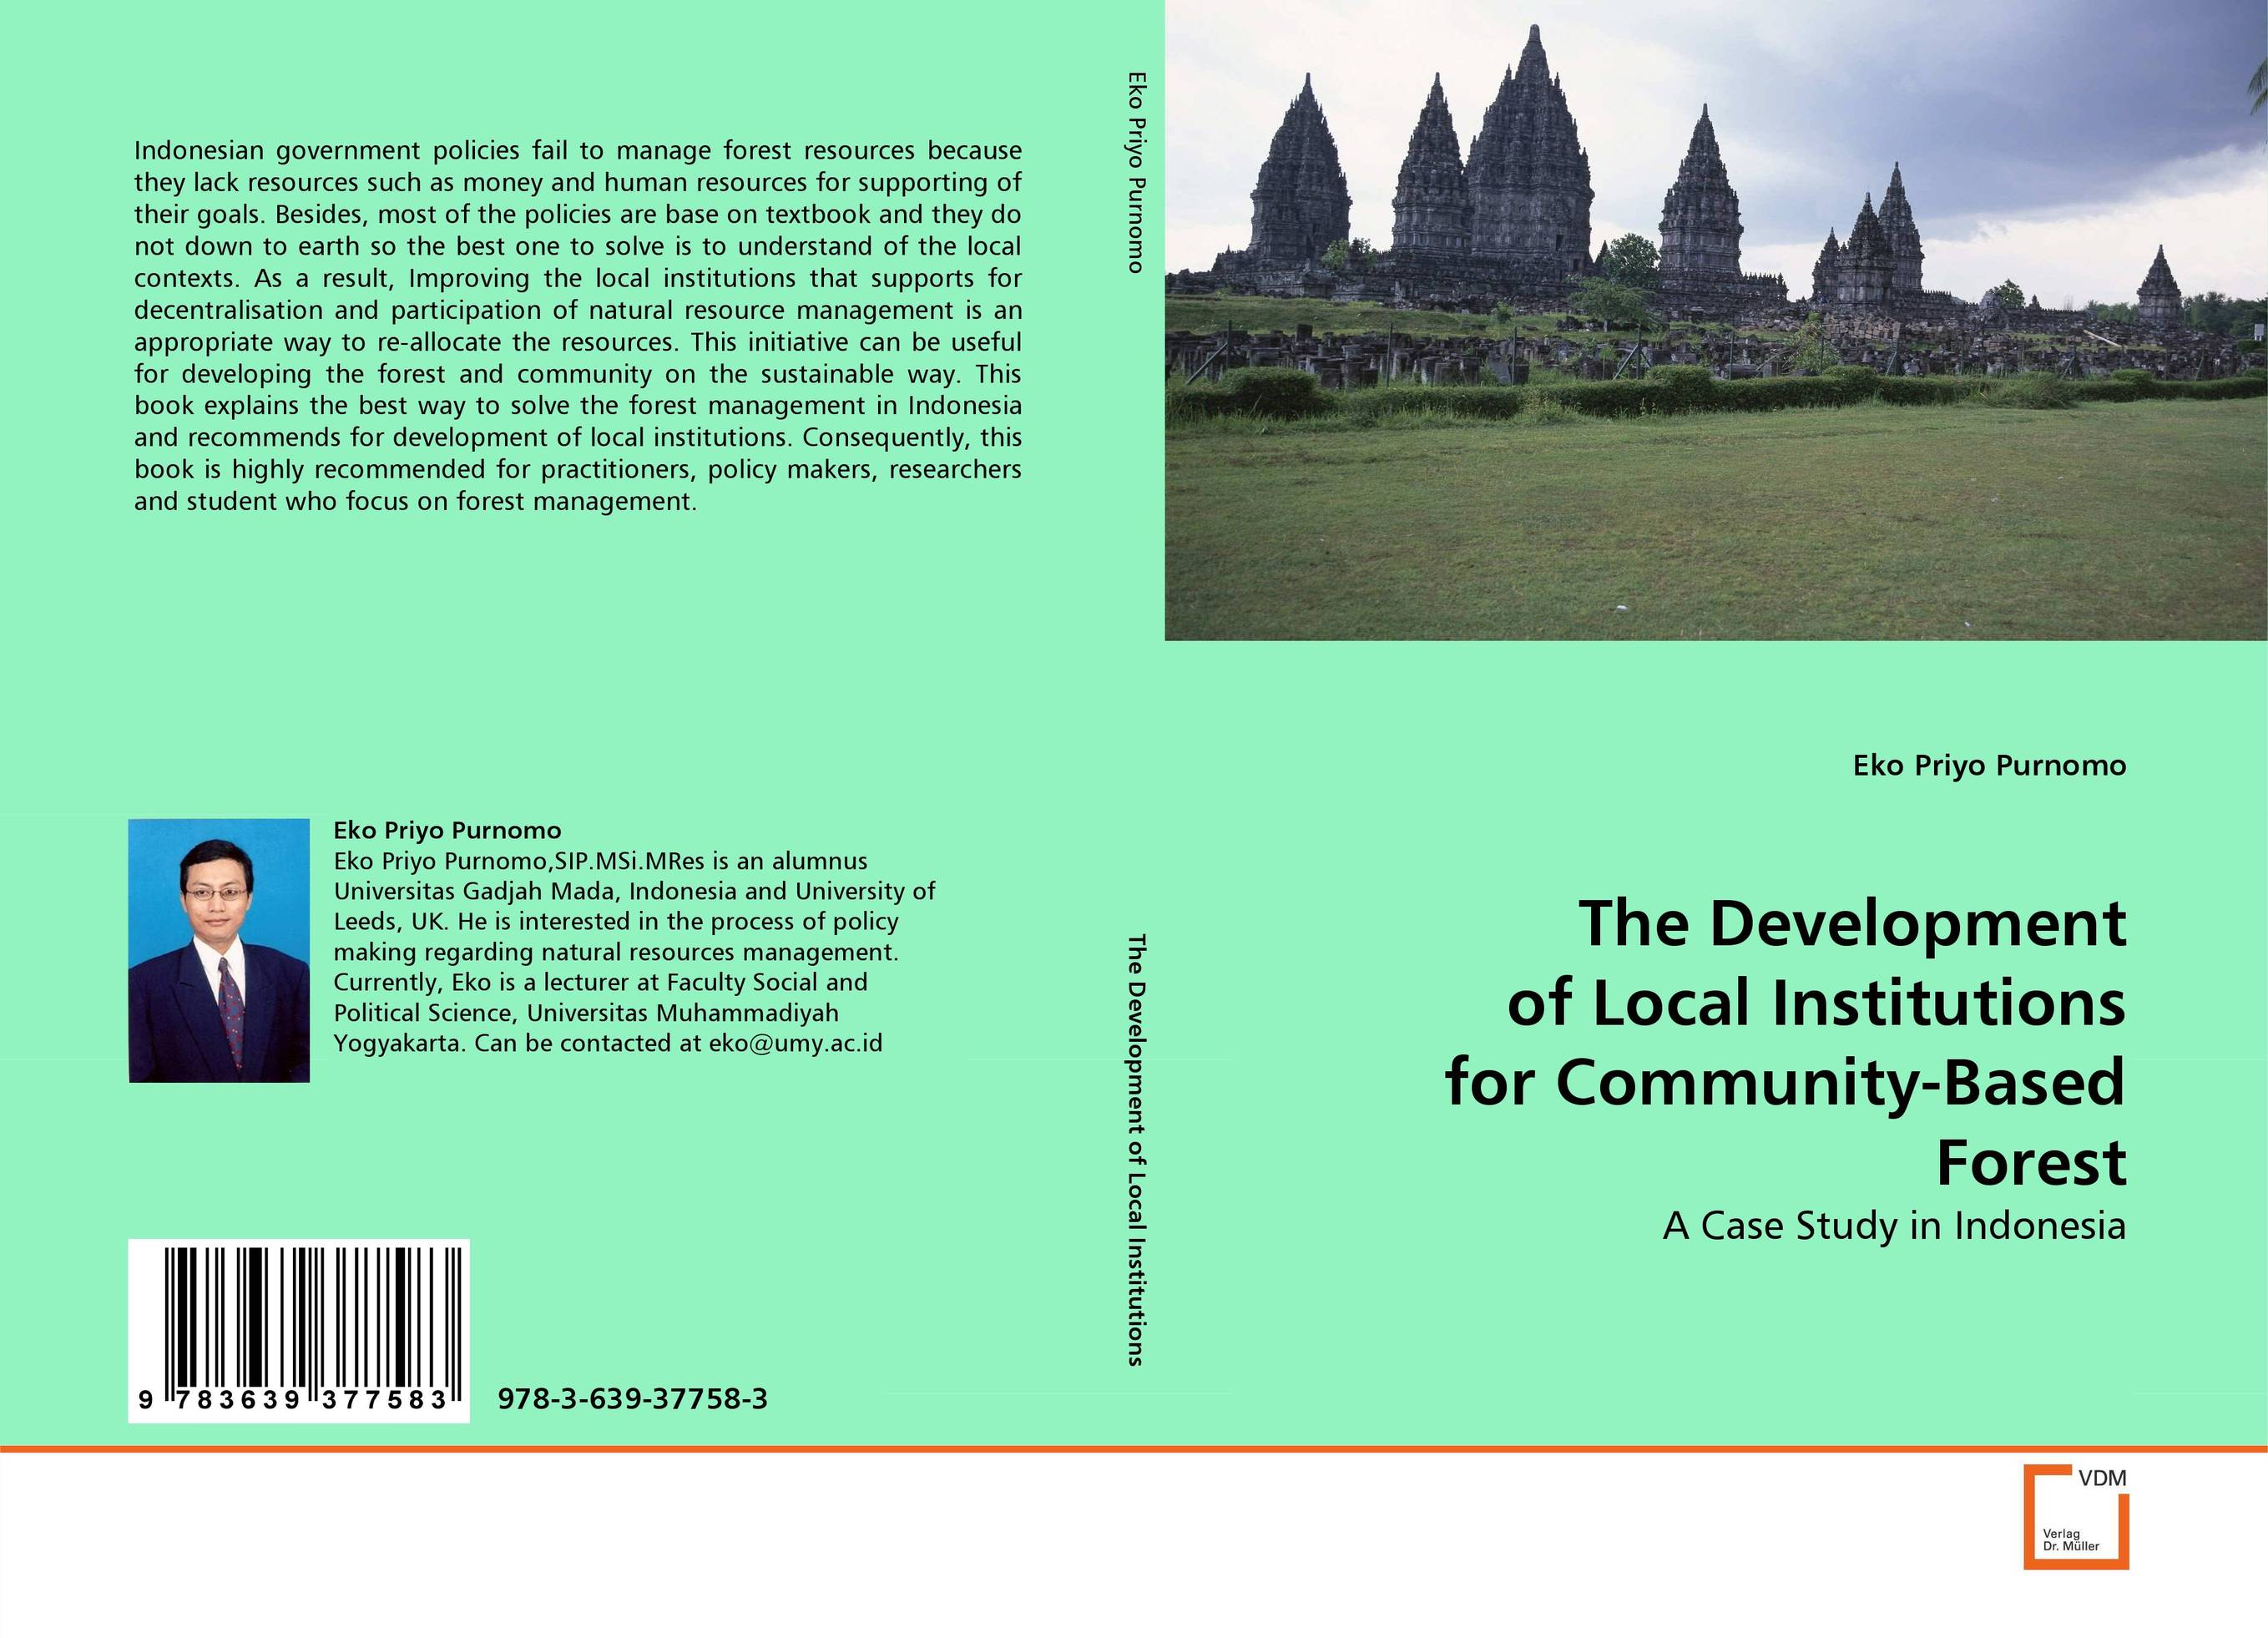 The Development of Local Institutions for Community-Based Forest the application of global ethics to solve local improprieties